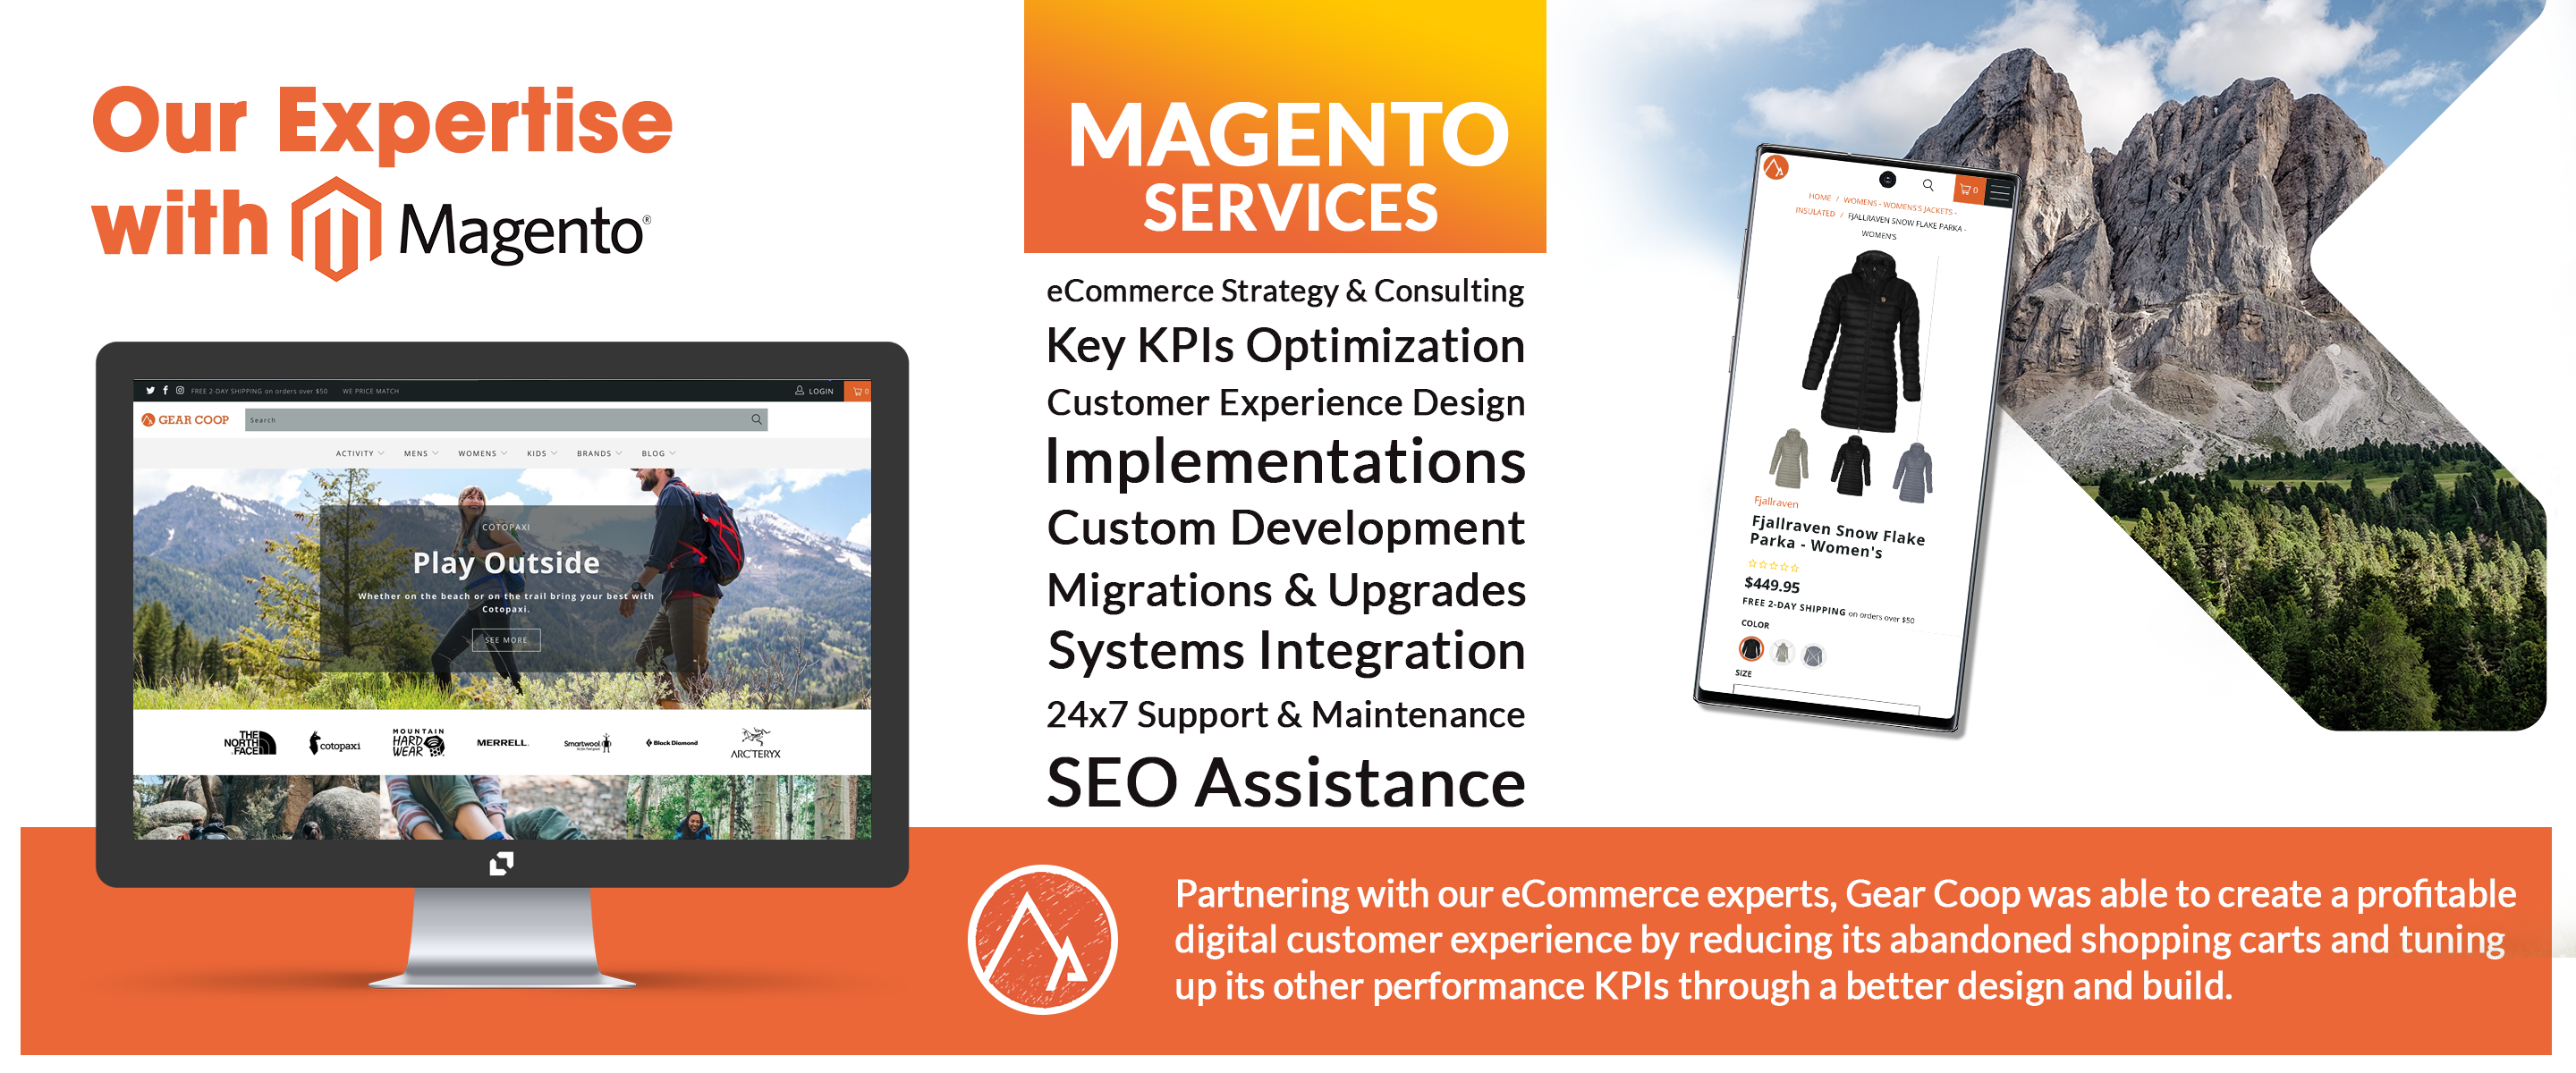 Magento ecommerce development, magento ecommerce development services